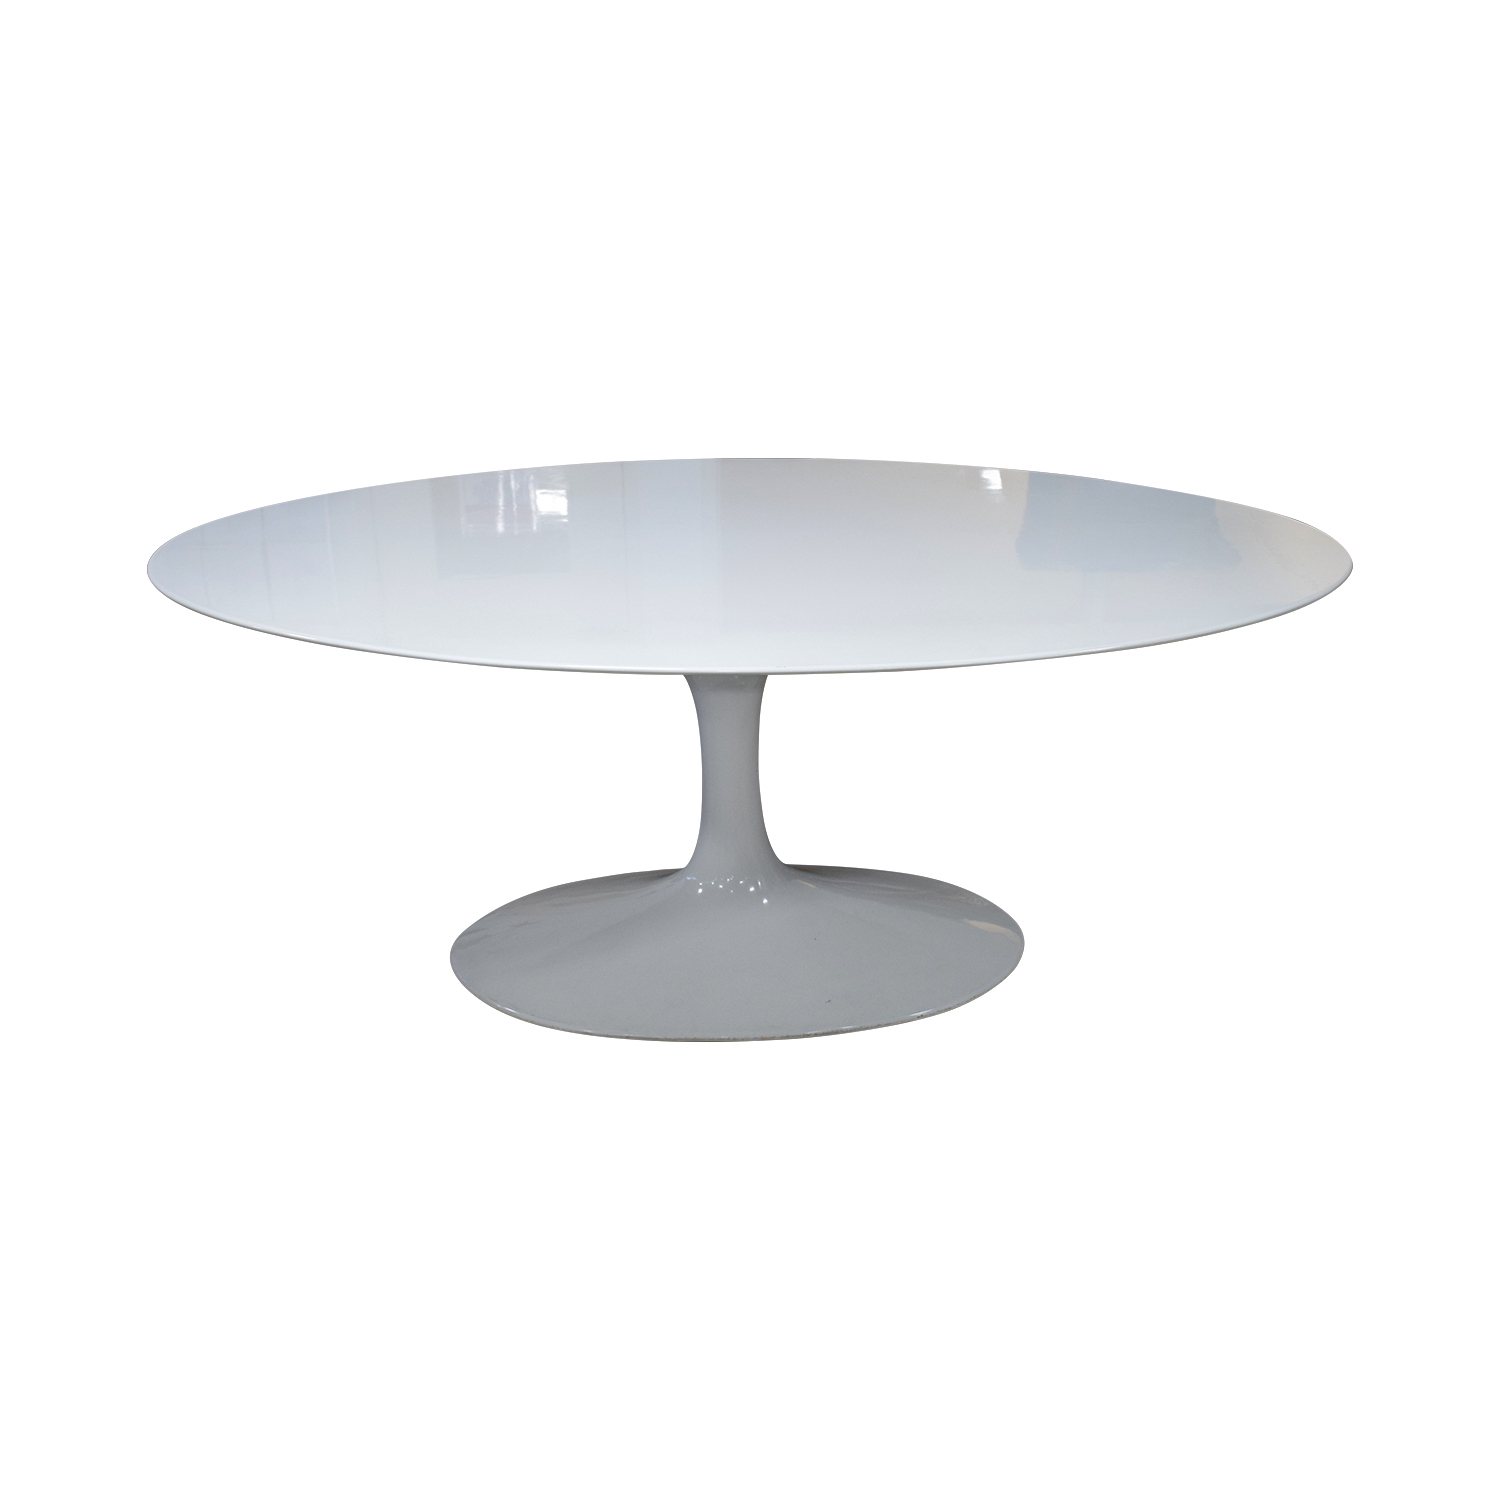 Replica of White Knoll Saarinen Oval Table Tables